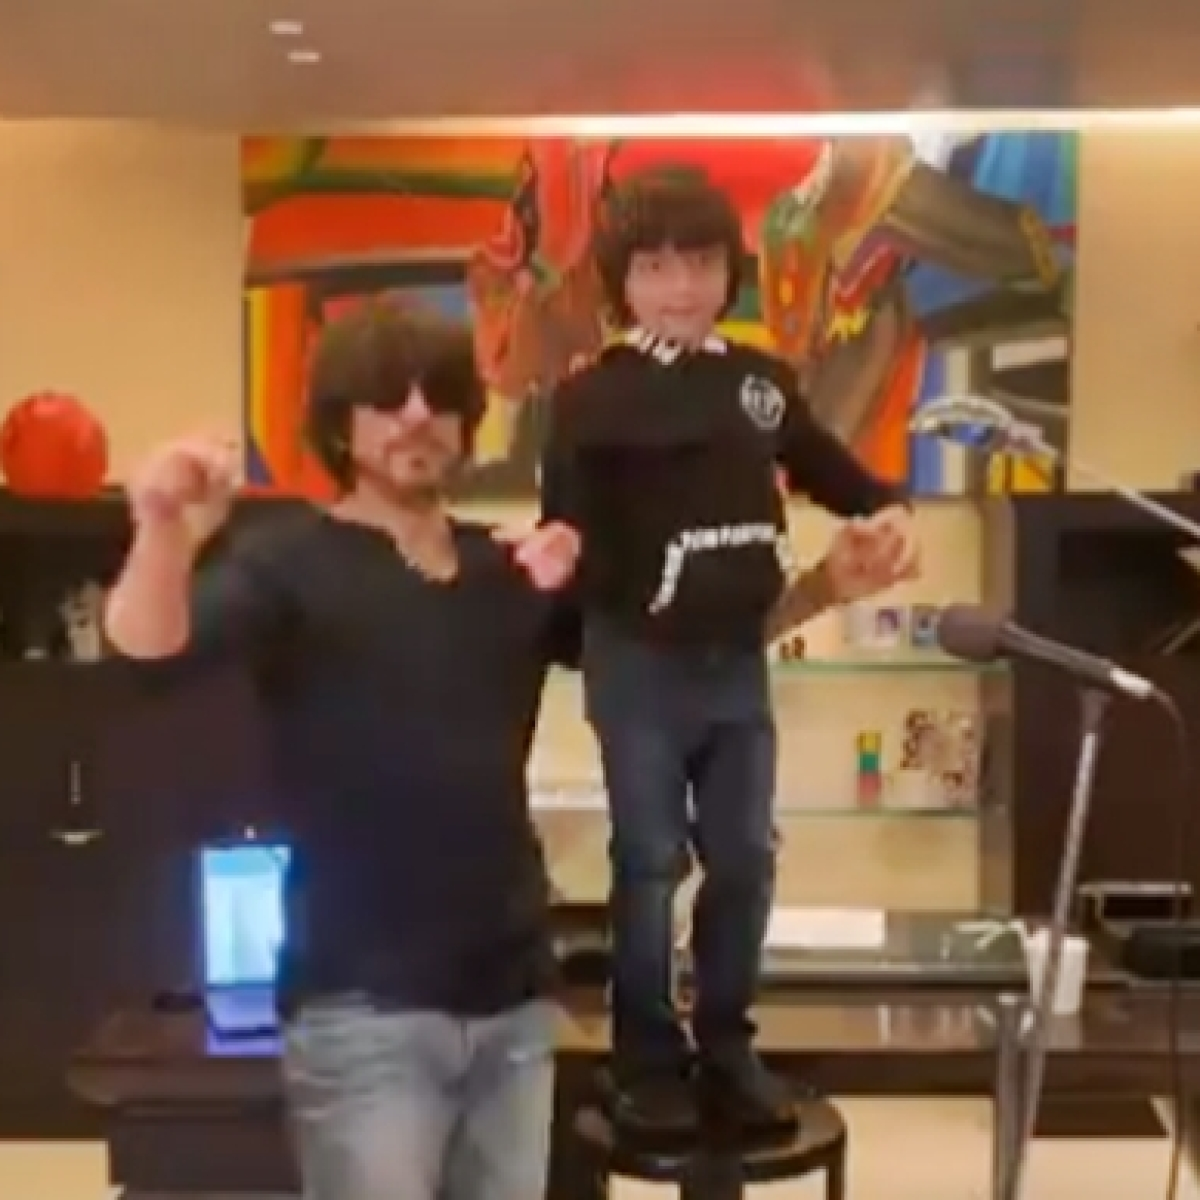 I For India: Shah Rukh Khan shares his song 'Sab Sahi Ho Jayega' featuring son AbRam